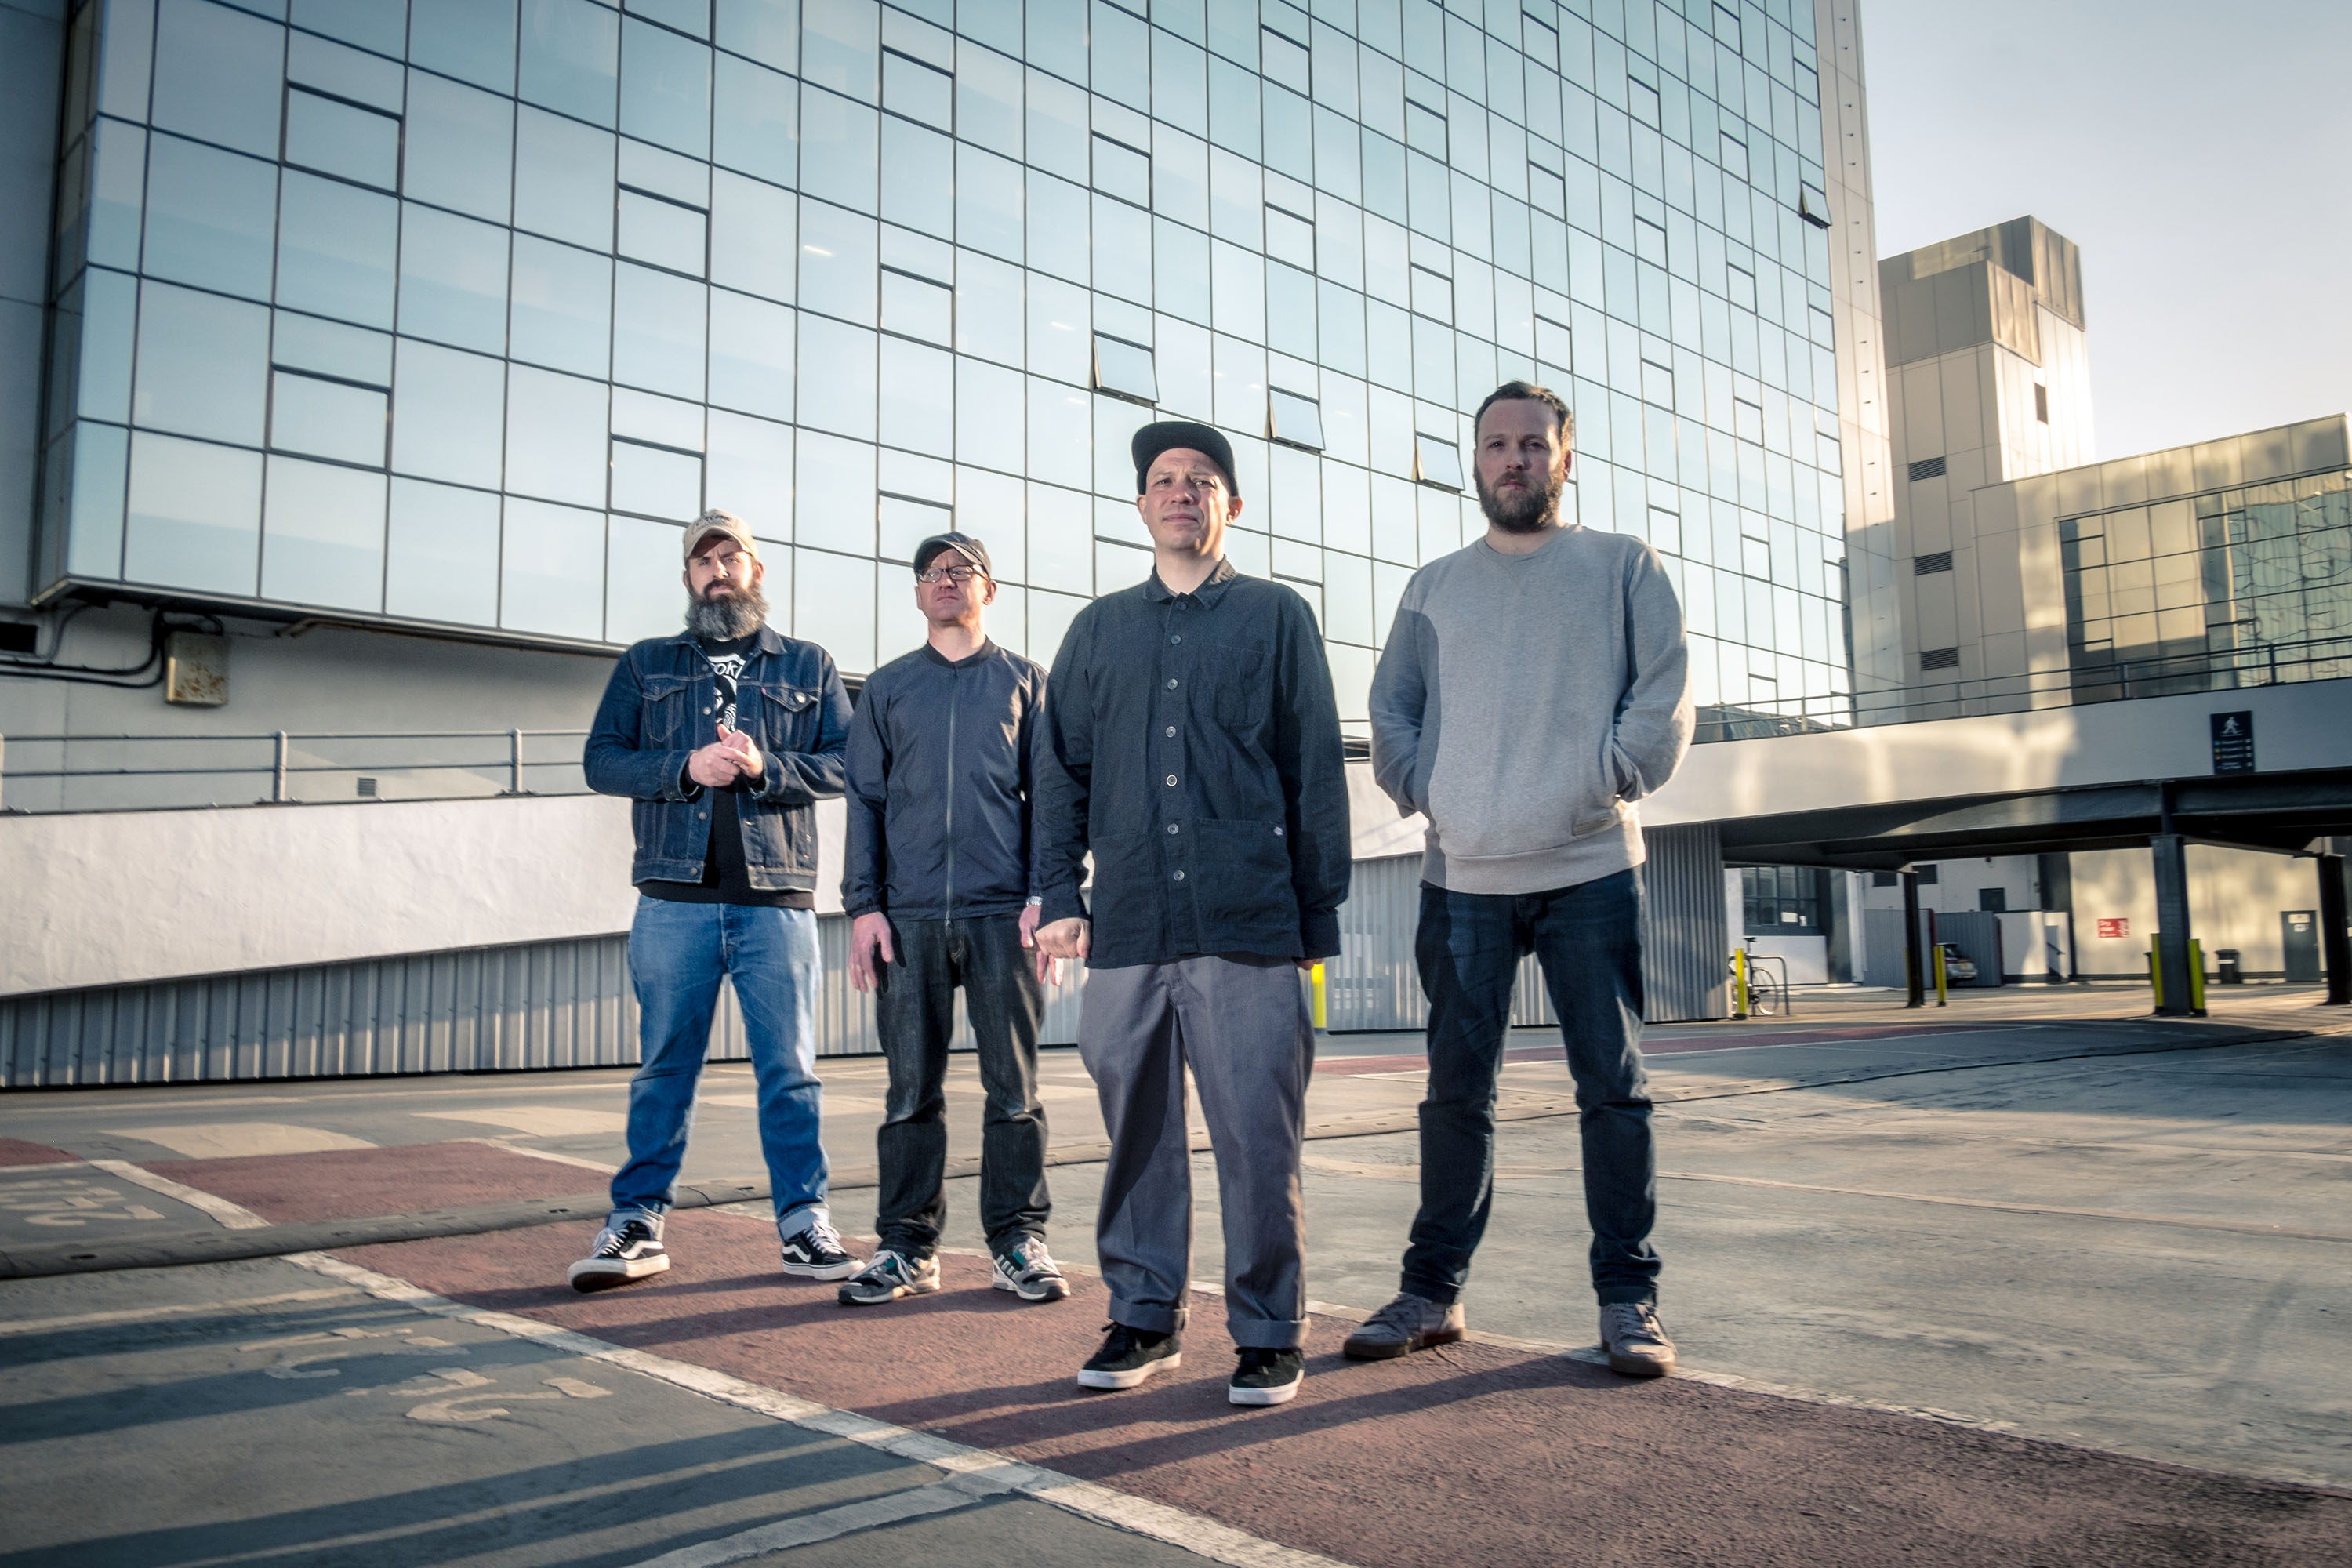 Mogwai announce new album 'KIN: Original Motion Picture Soundtrack'